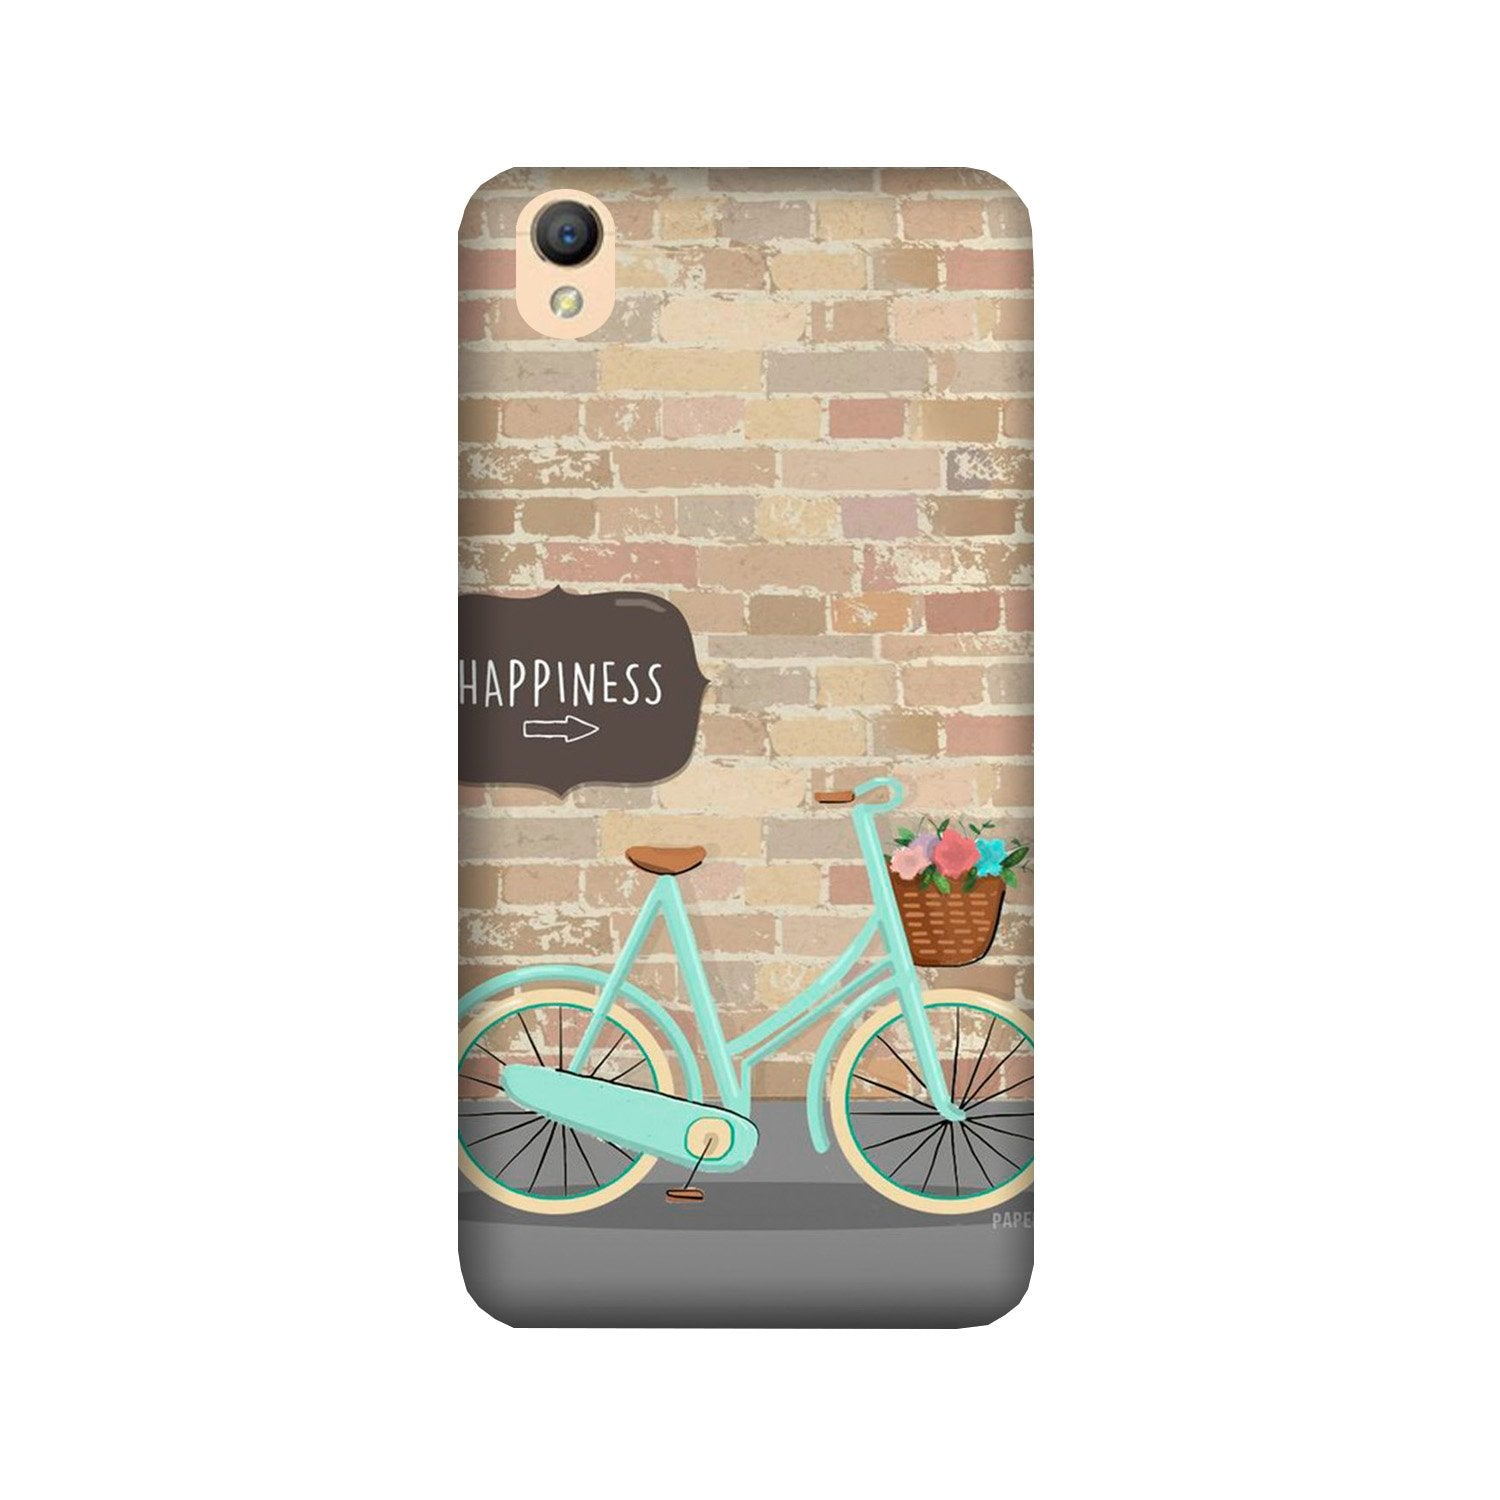 Happiness Case for Oppo A37